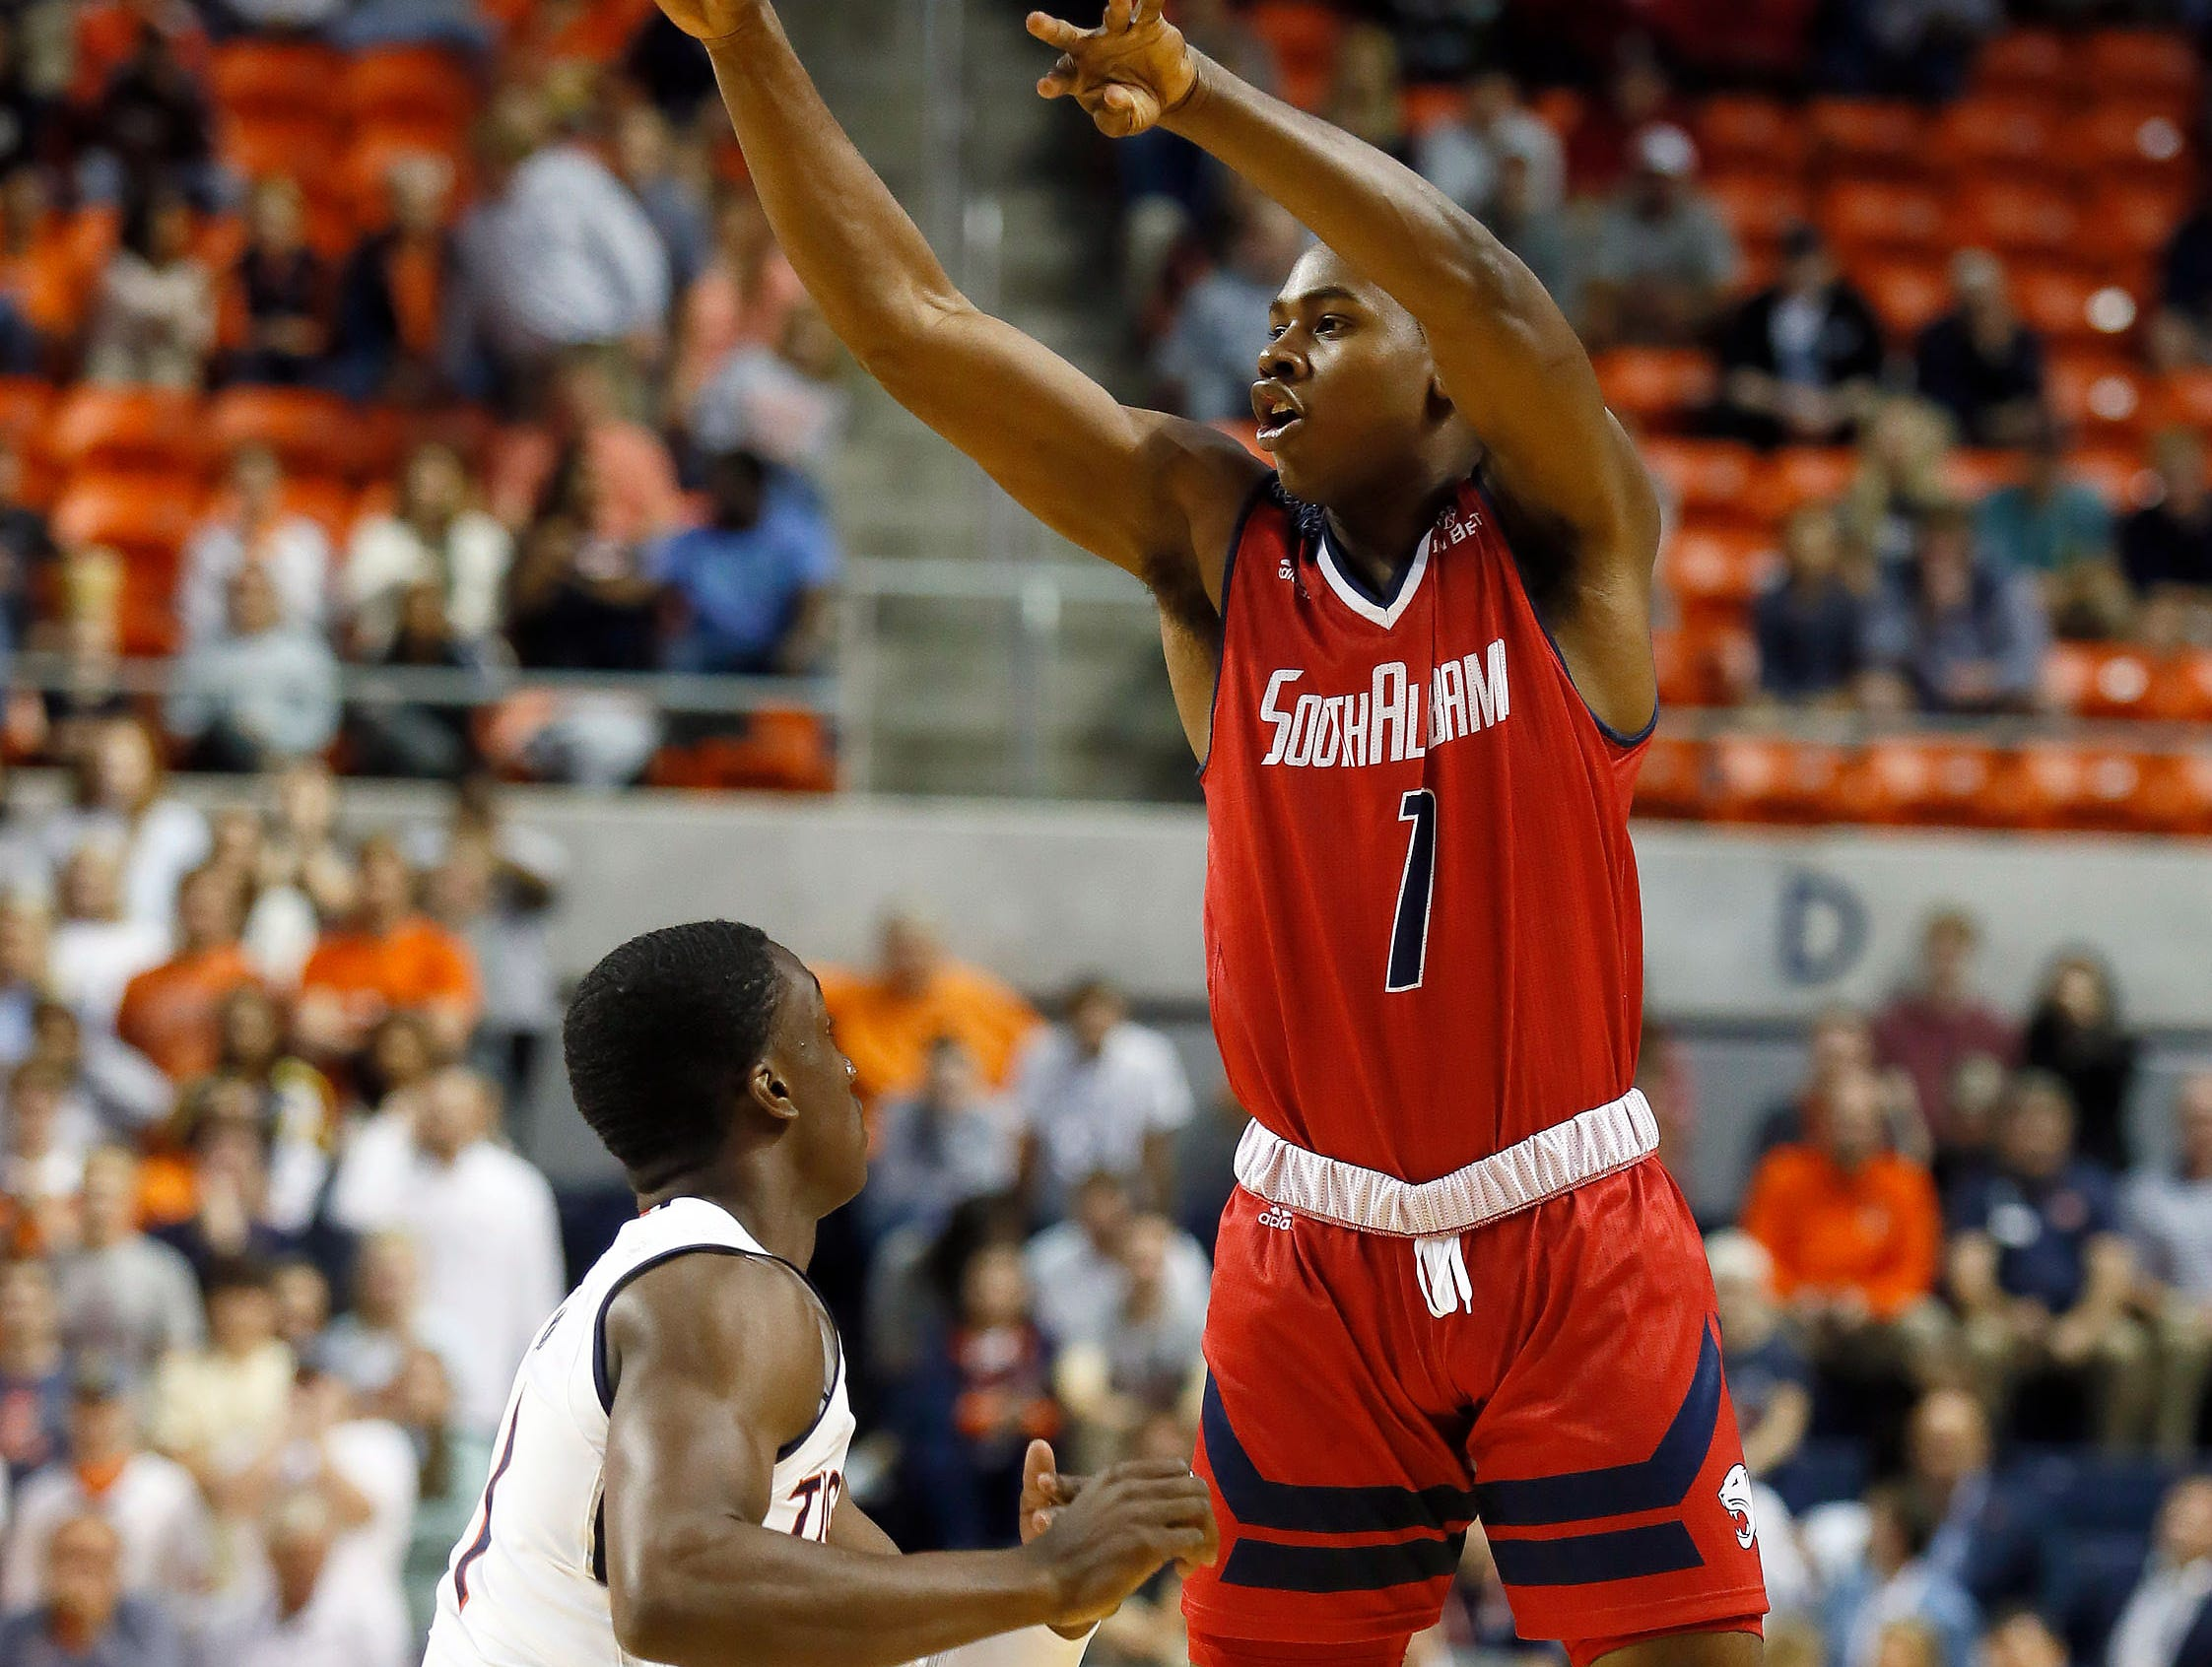 Nov 6, 2018; Auburn, AL, USA; South Alabama Jaguars guard Her BcGee (1) makes a pass over Auburn Tigers guard Jared Harper (1) during the first half at Auburn Arena. Mandatory Credit: John Reed-USA TODAY Sports